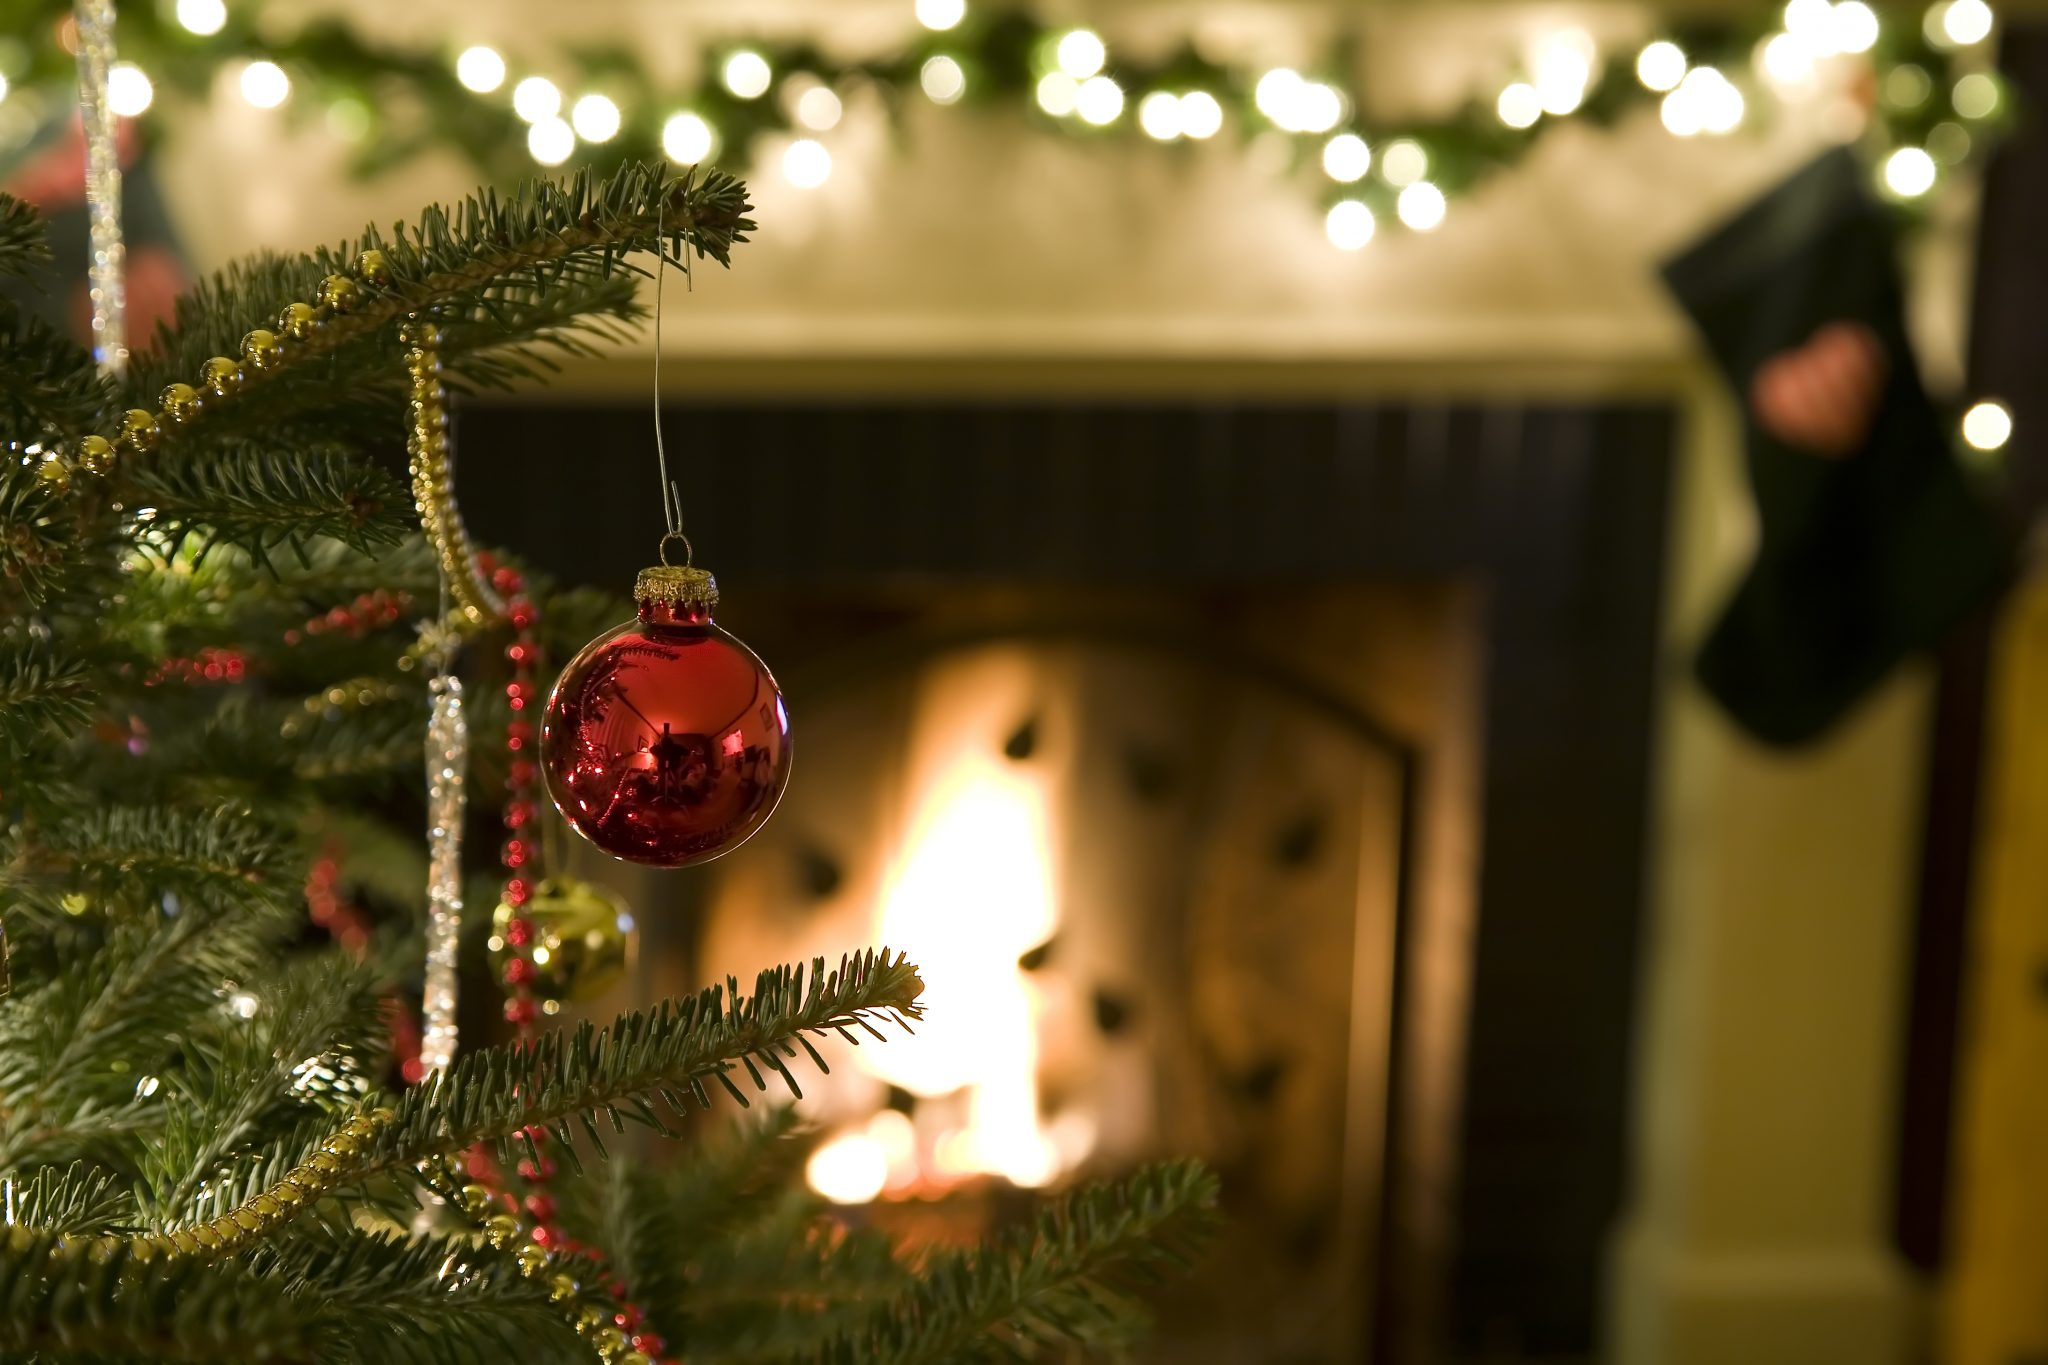 A close up of a decorated Christmas tree in front a fireplace with Christmas lights and a stocking.